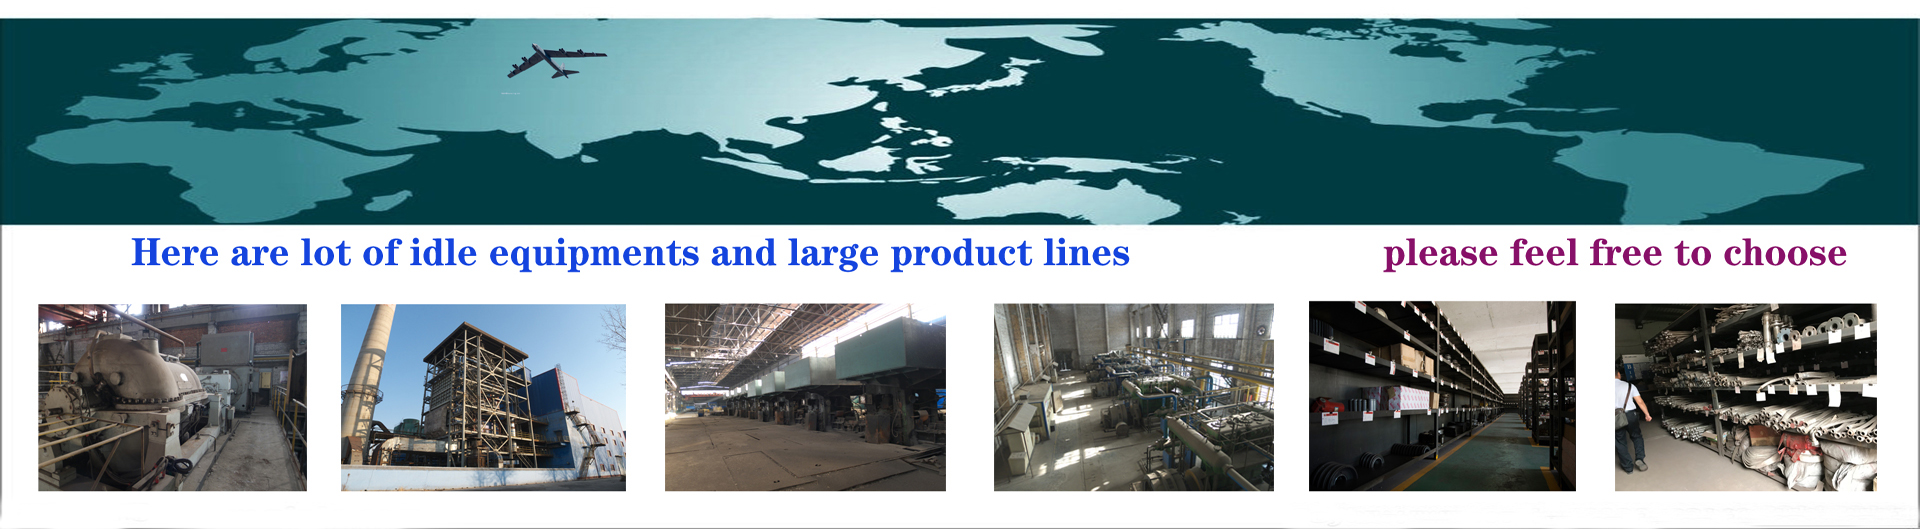 LARGE SCALE PRODUCT LINE AND IDLE EQUIPMENTS